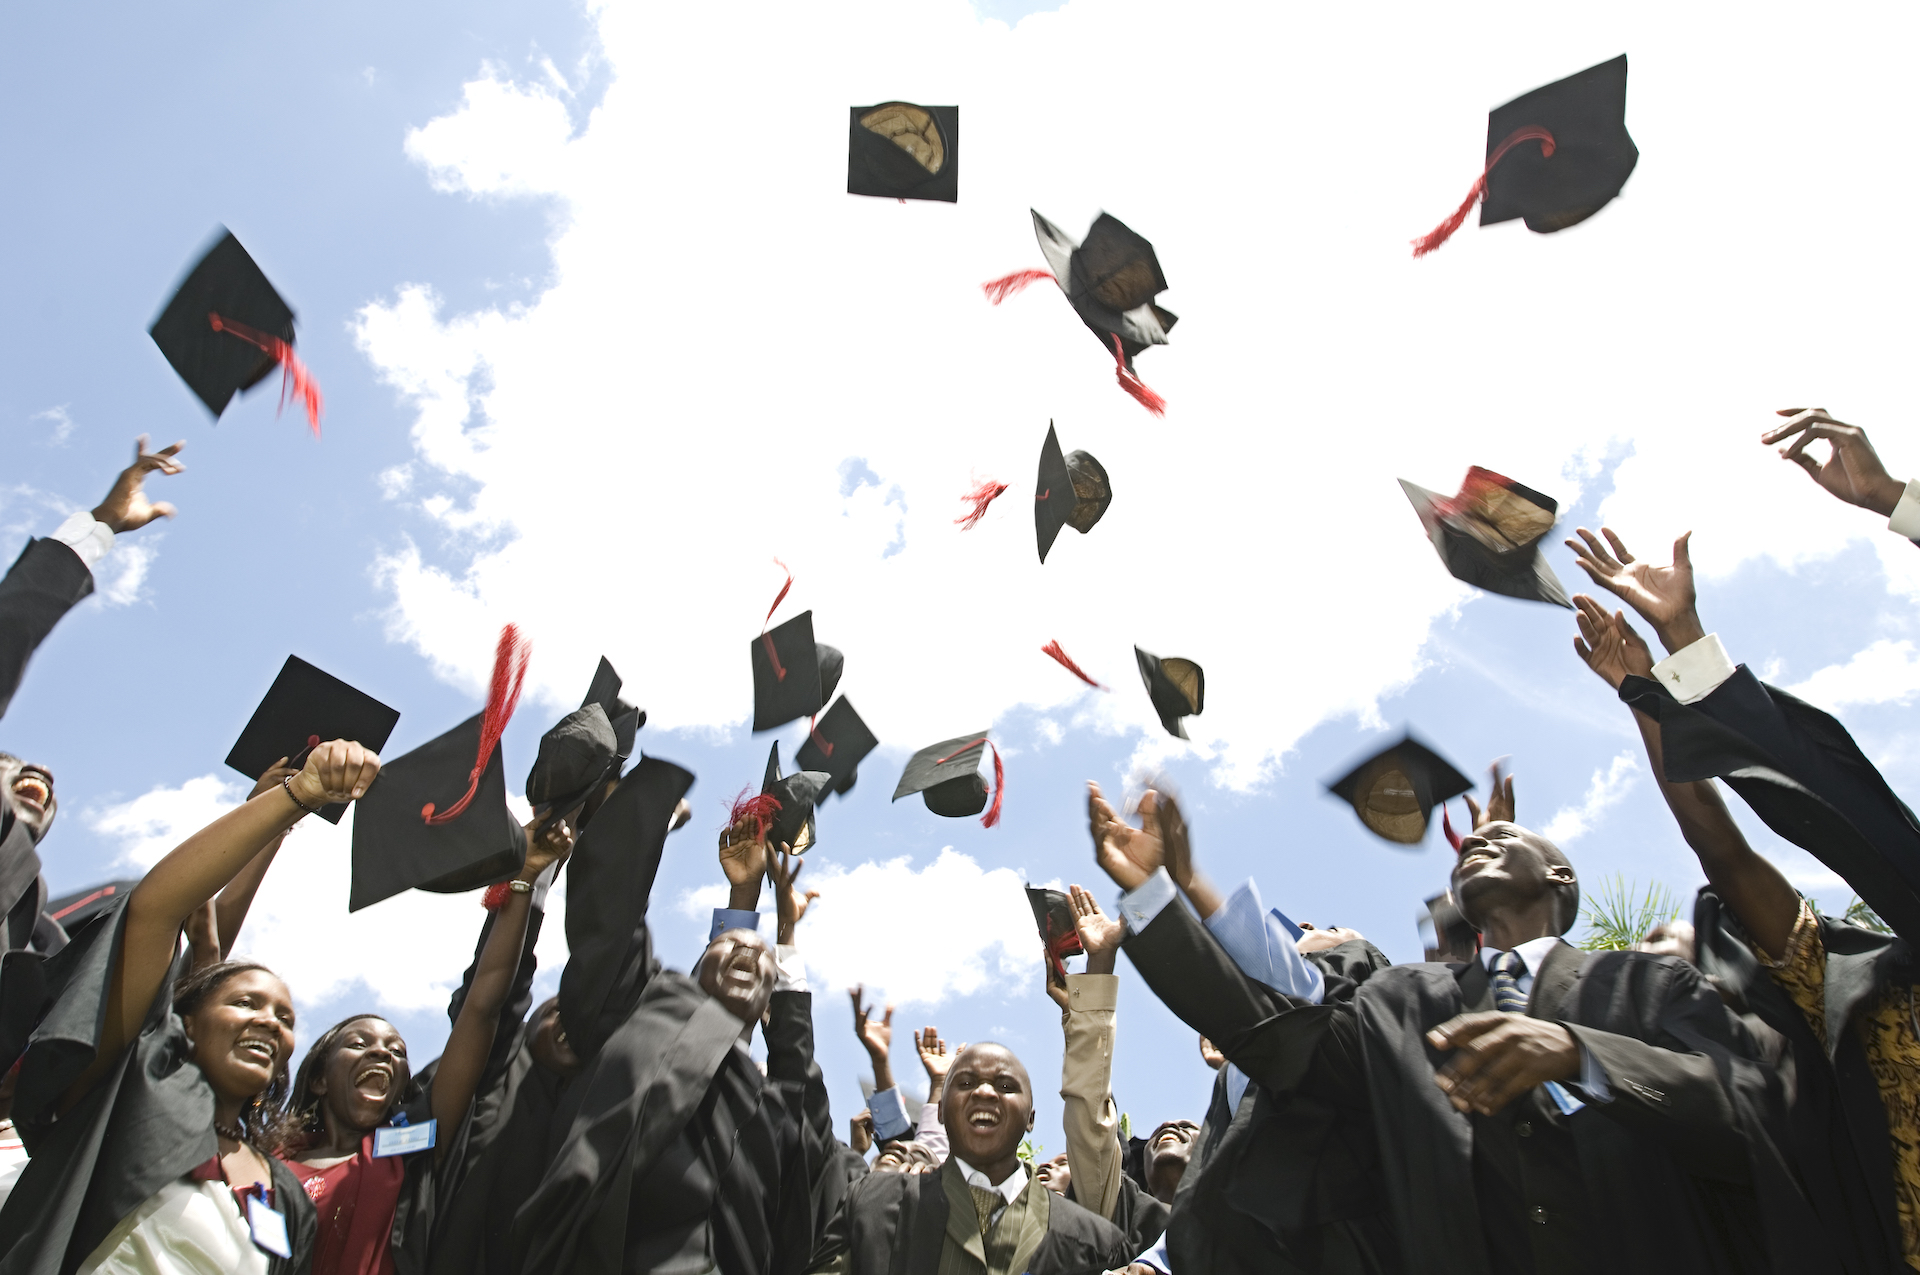 A group of students throw their graduation hats in the air.